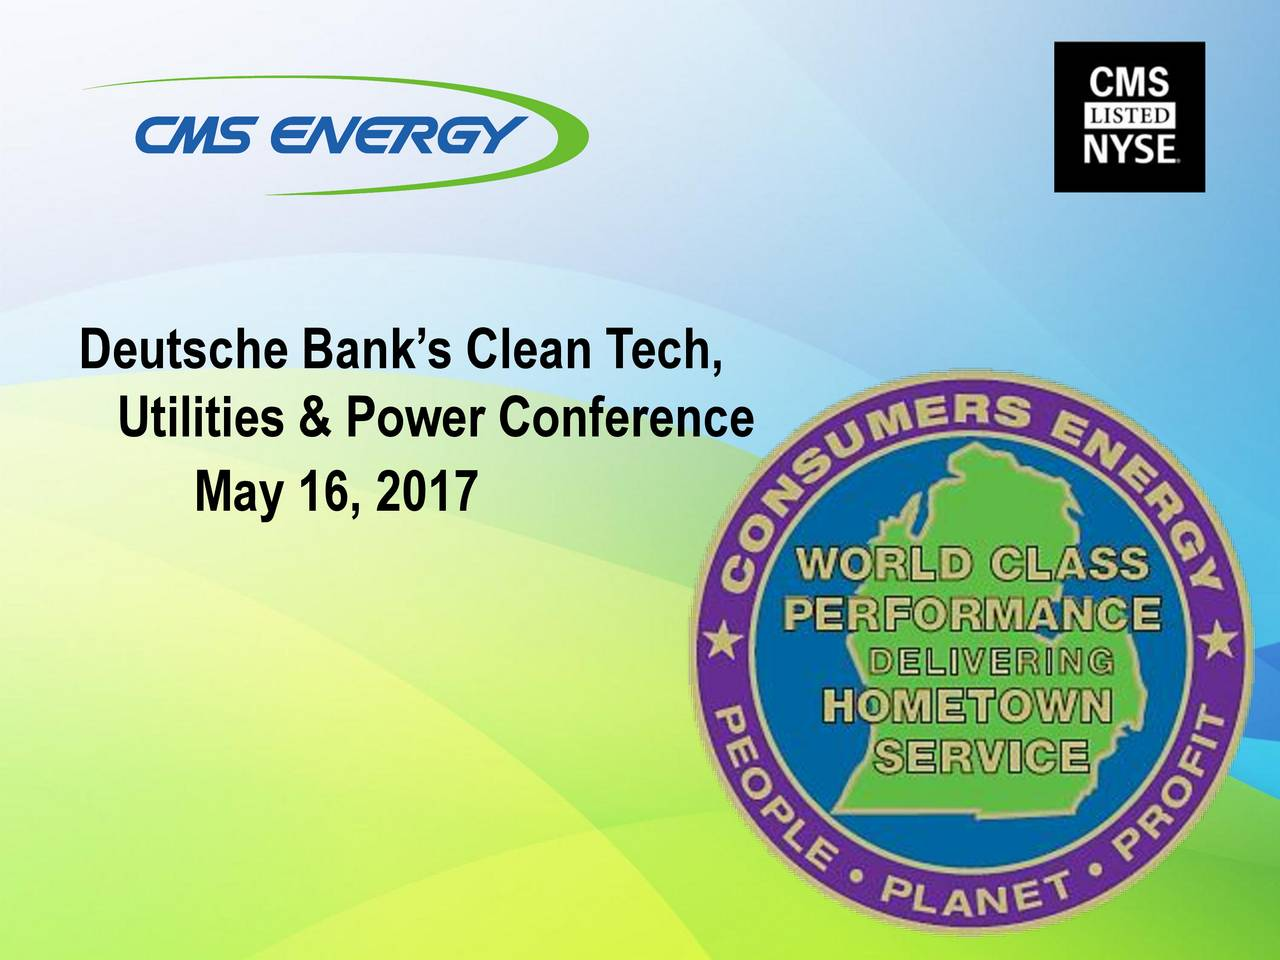 Cms energy cms presents at deutsche 2017 clean tech utilities utilities power conference may 16 biocorpaavc Gallery